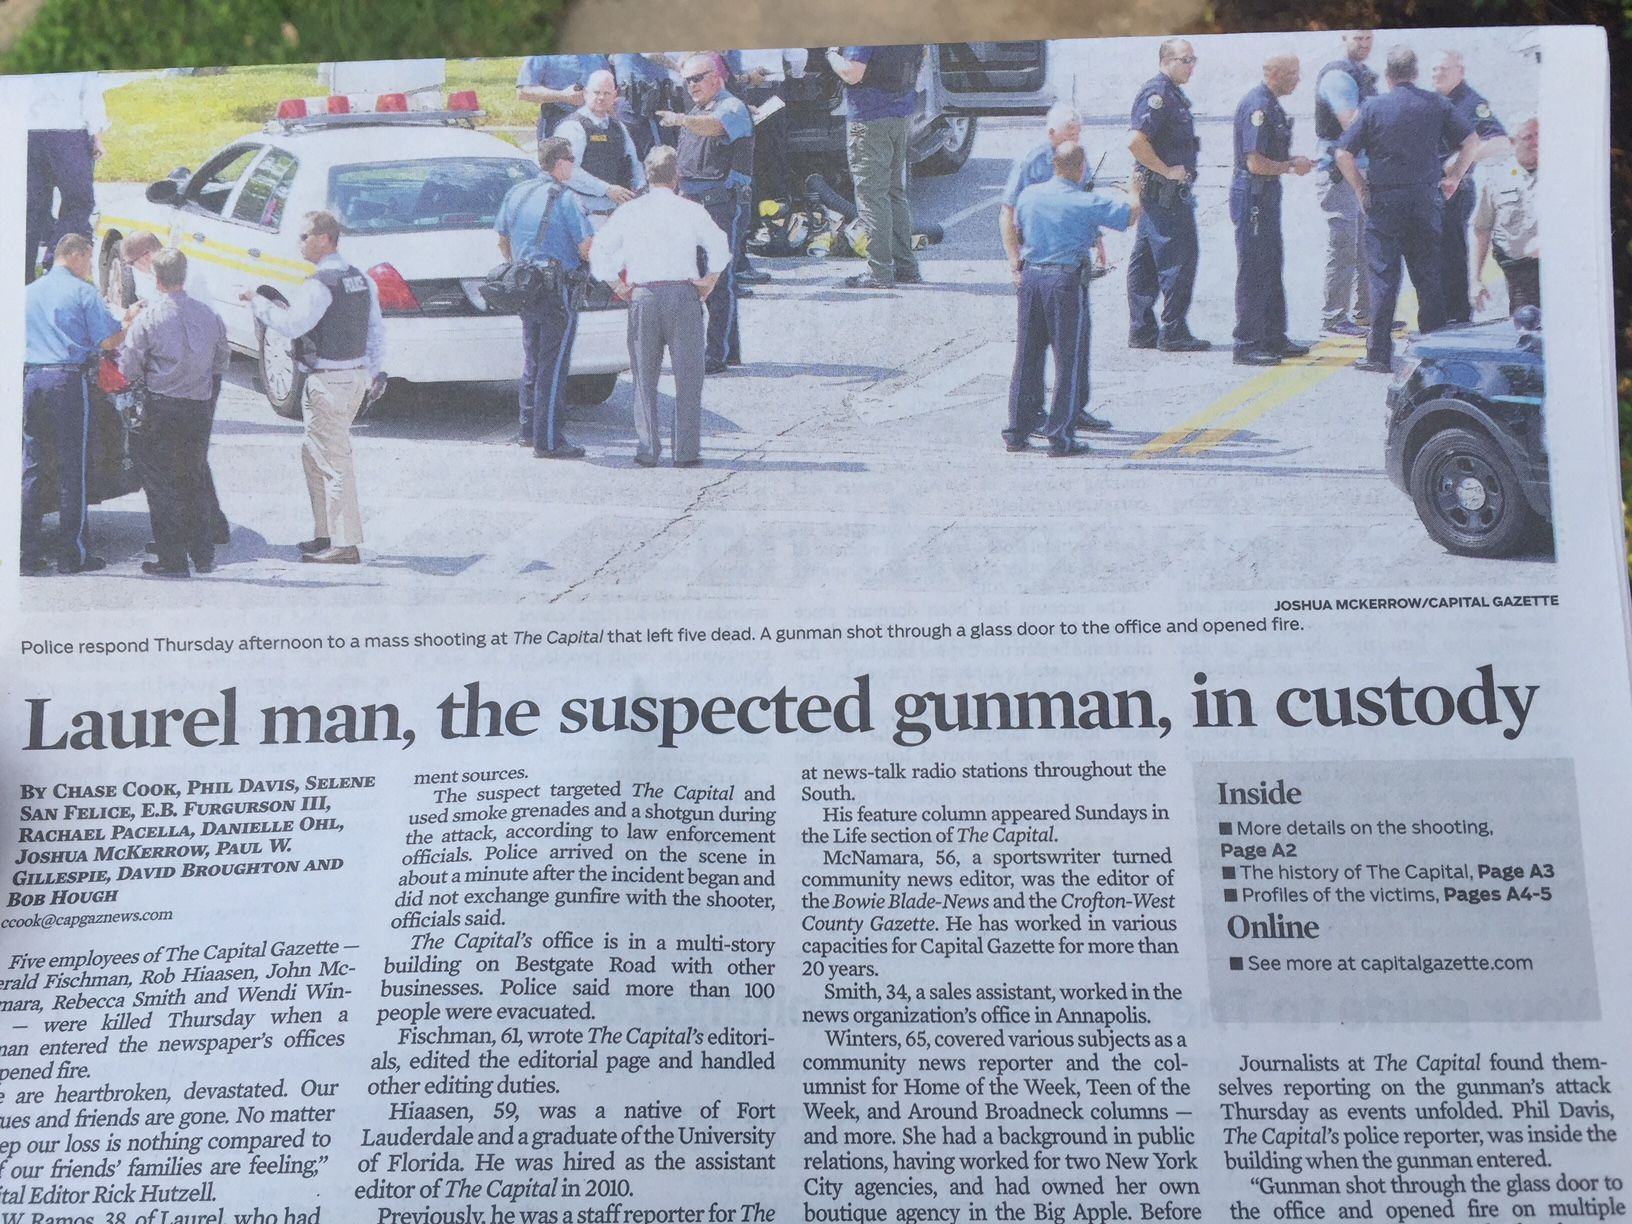 The front page of the Capital Gazette the morning after the shooting. (WTOP/John Domen)